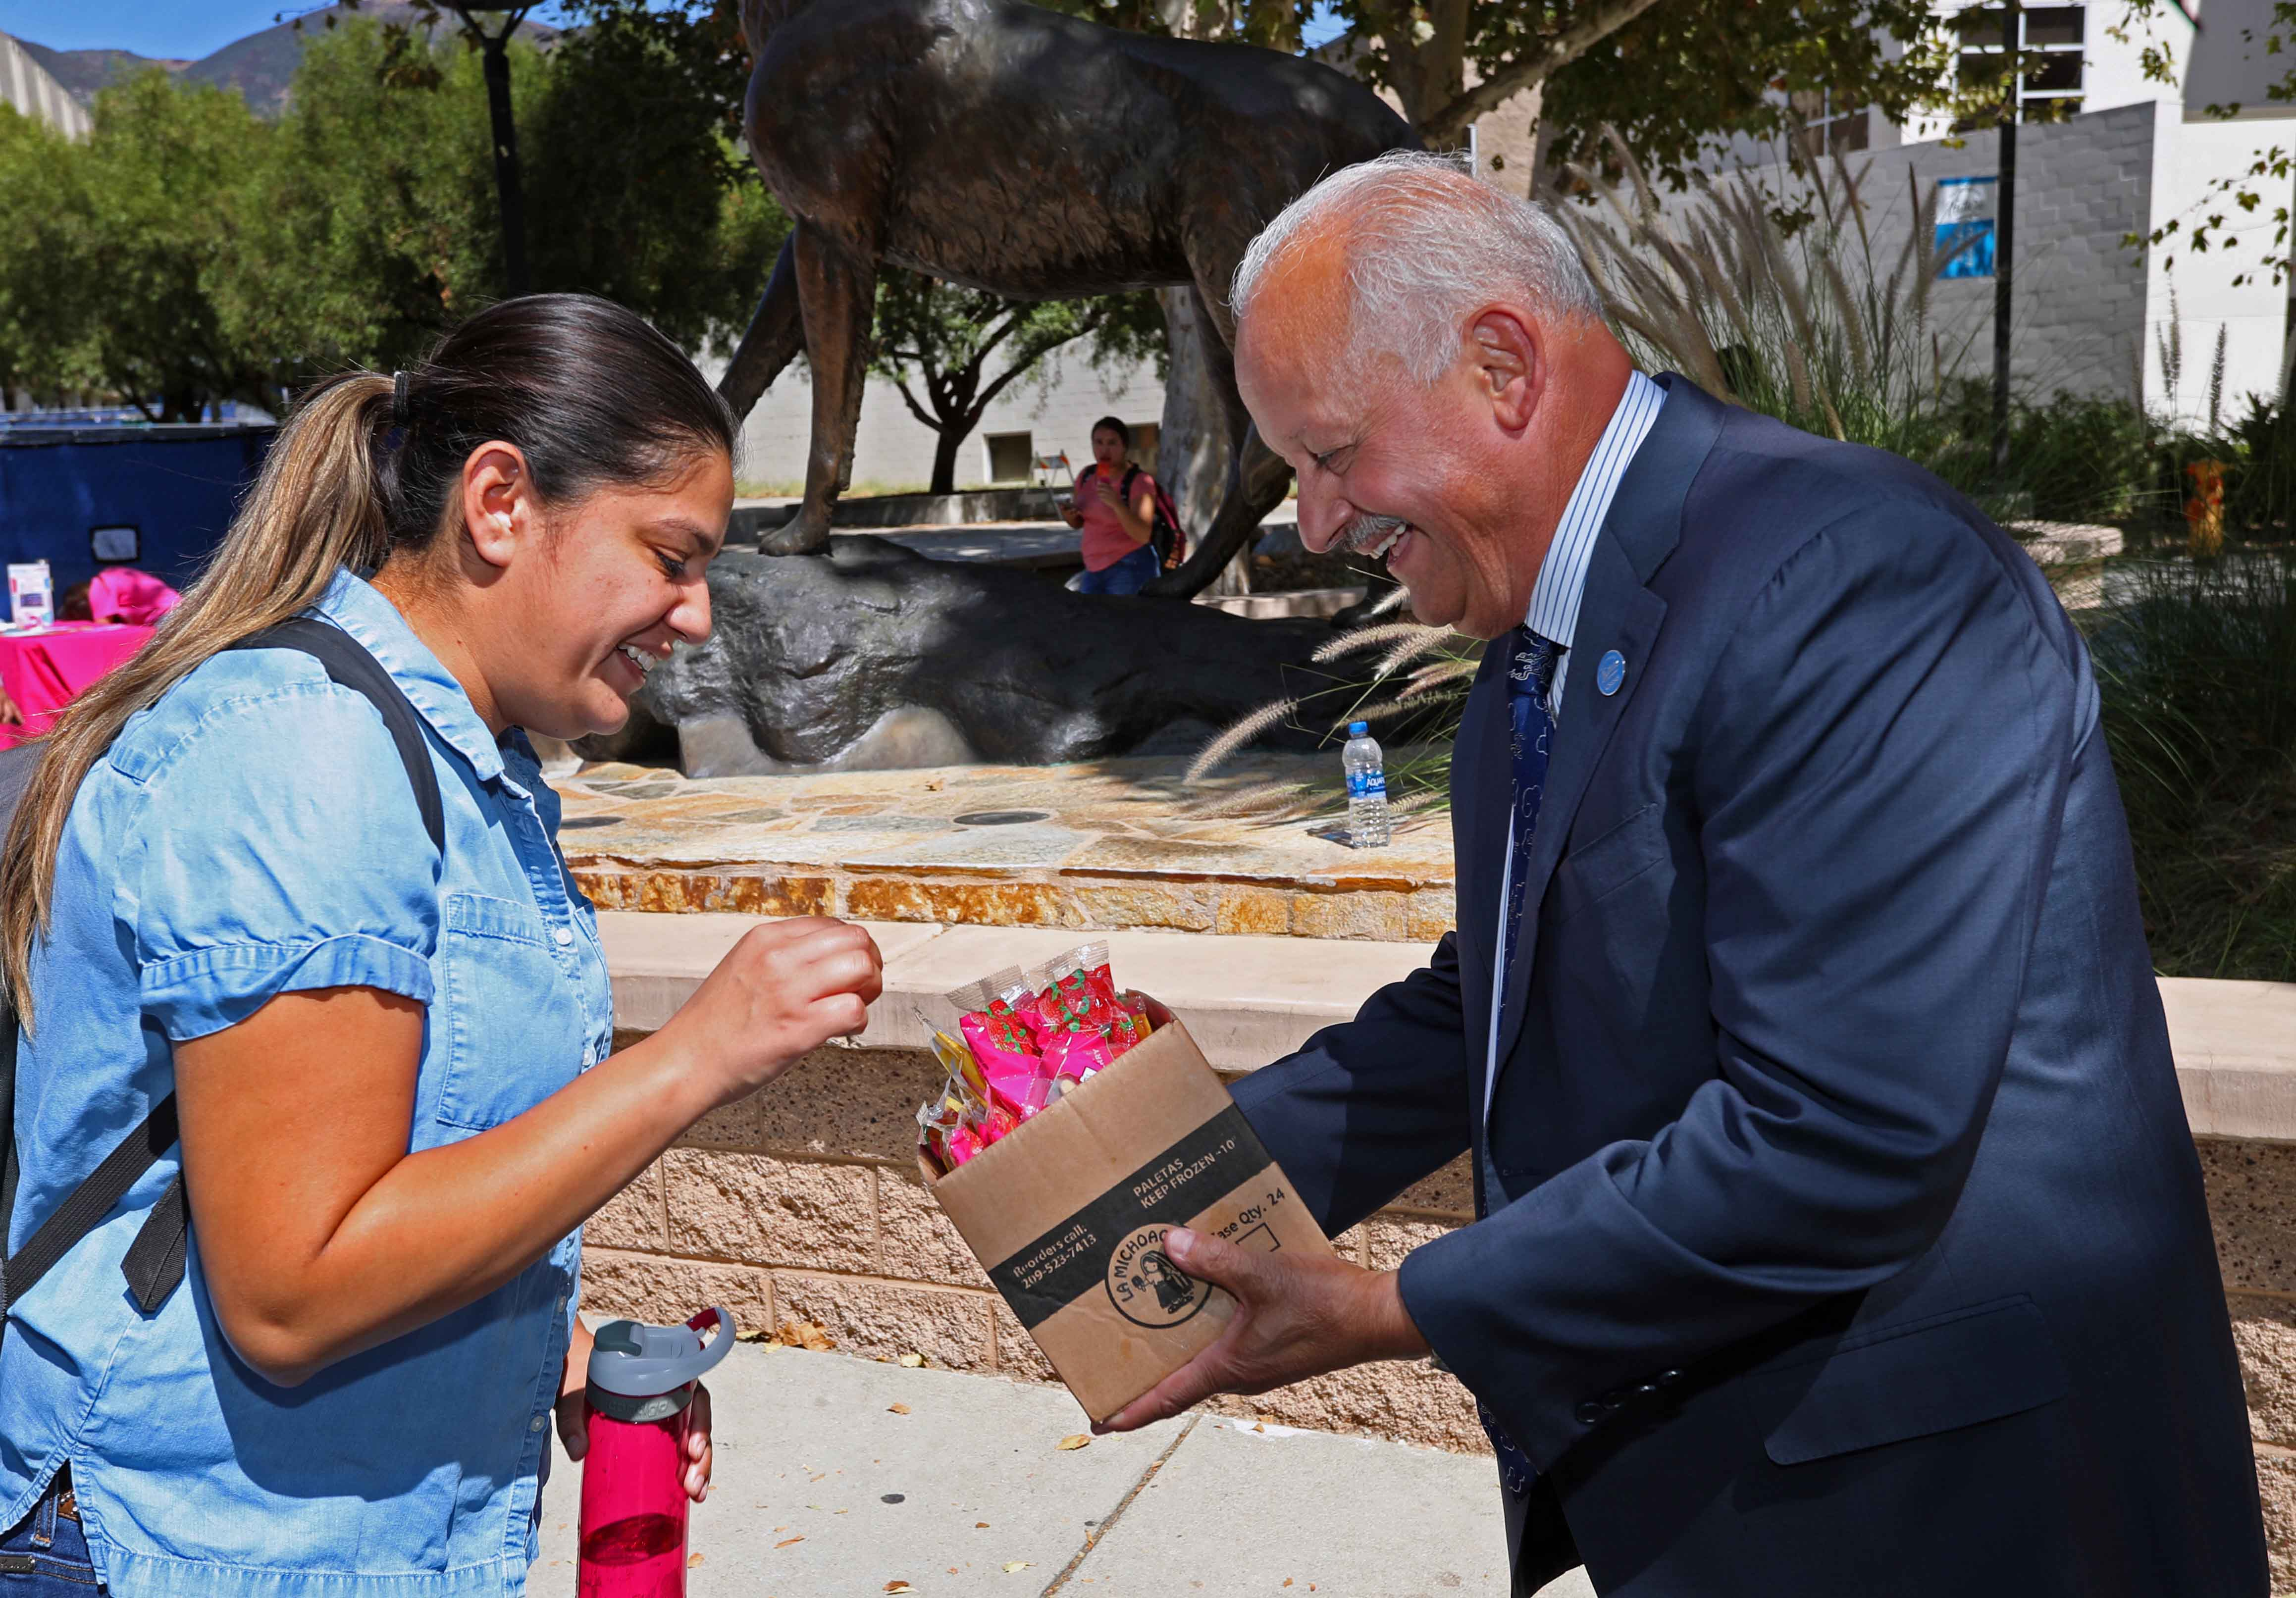 Cal State San Bernardino President Tomás D. Morales and the university's Orientation and First Year Experience handed out popsicles to students near the Wild Song statue on Sept. 23.